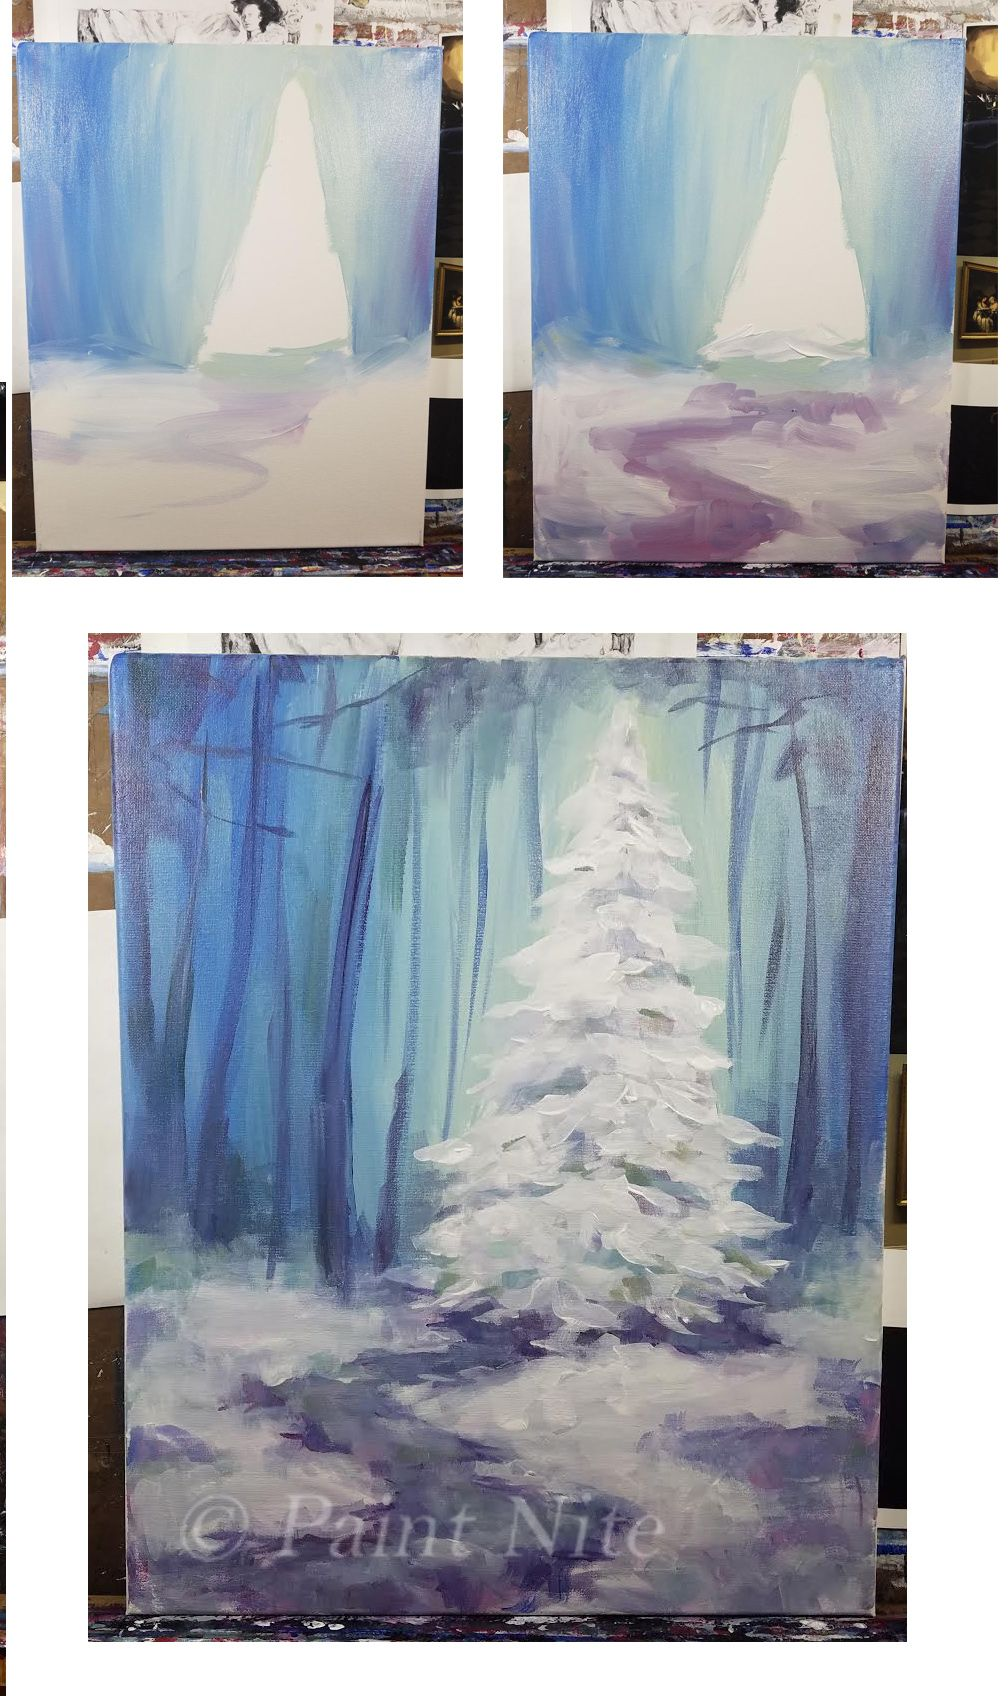 Snowy Pine Easy Colors White Blue Yellow Brushes Medium